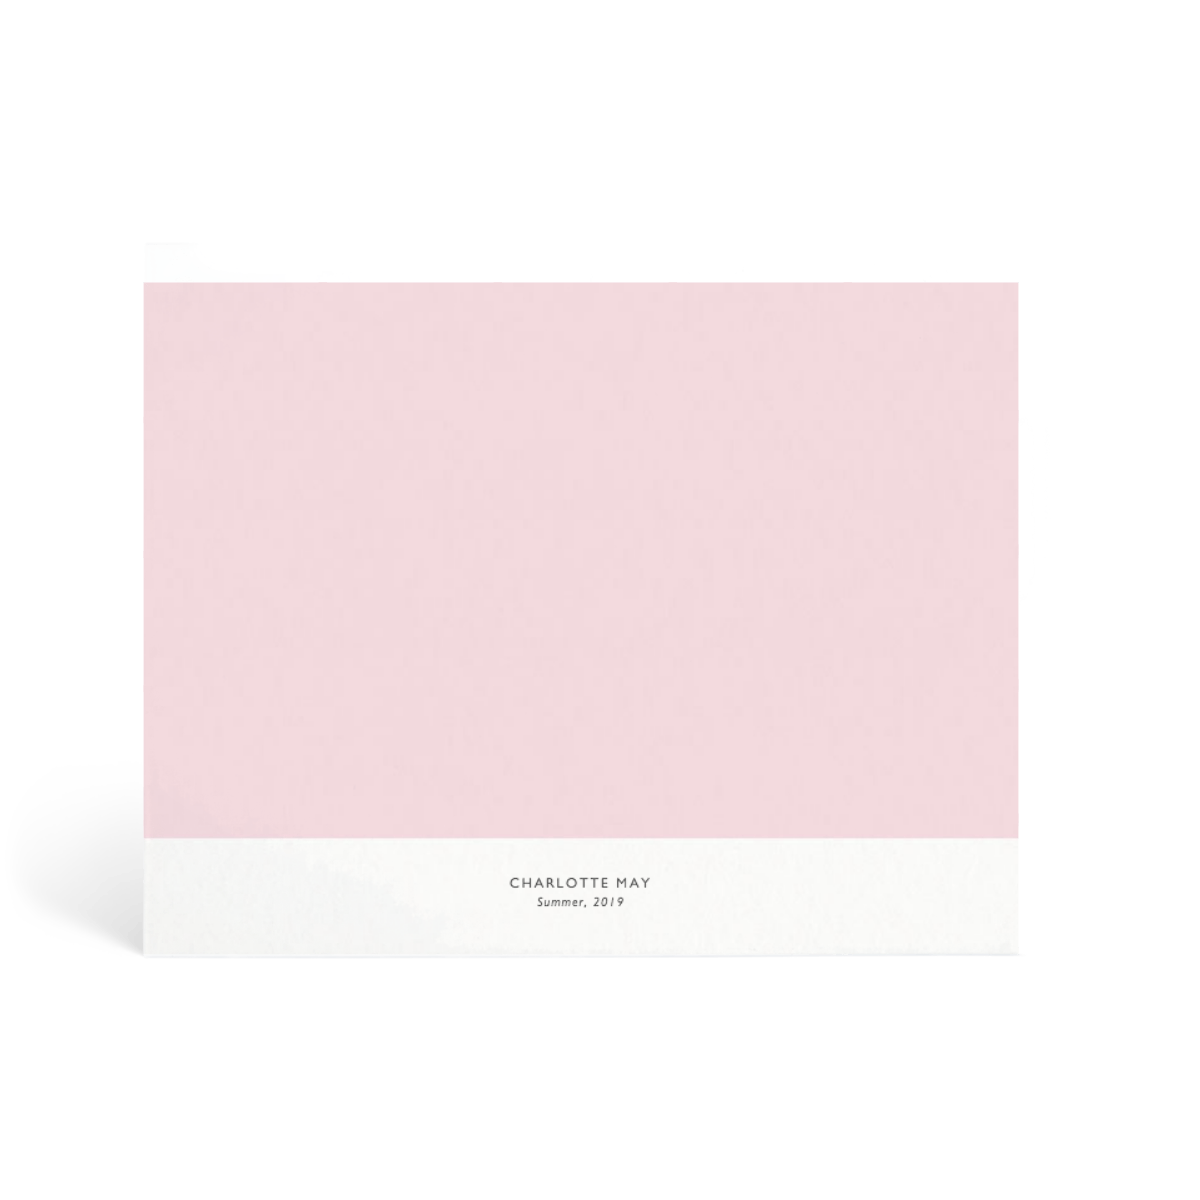 Https%3a%2f%2fwww.papier.com%2fproduct image%2f42715%2f28%2fcolour block 10906 front 1533724307.png?ixlib=rb 1.1